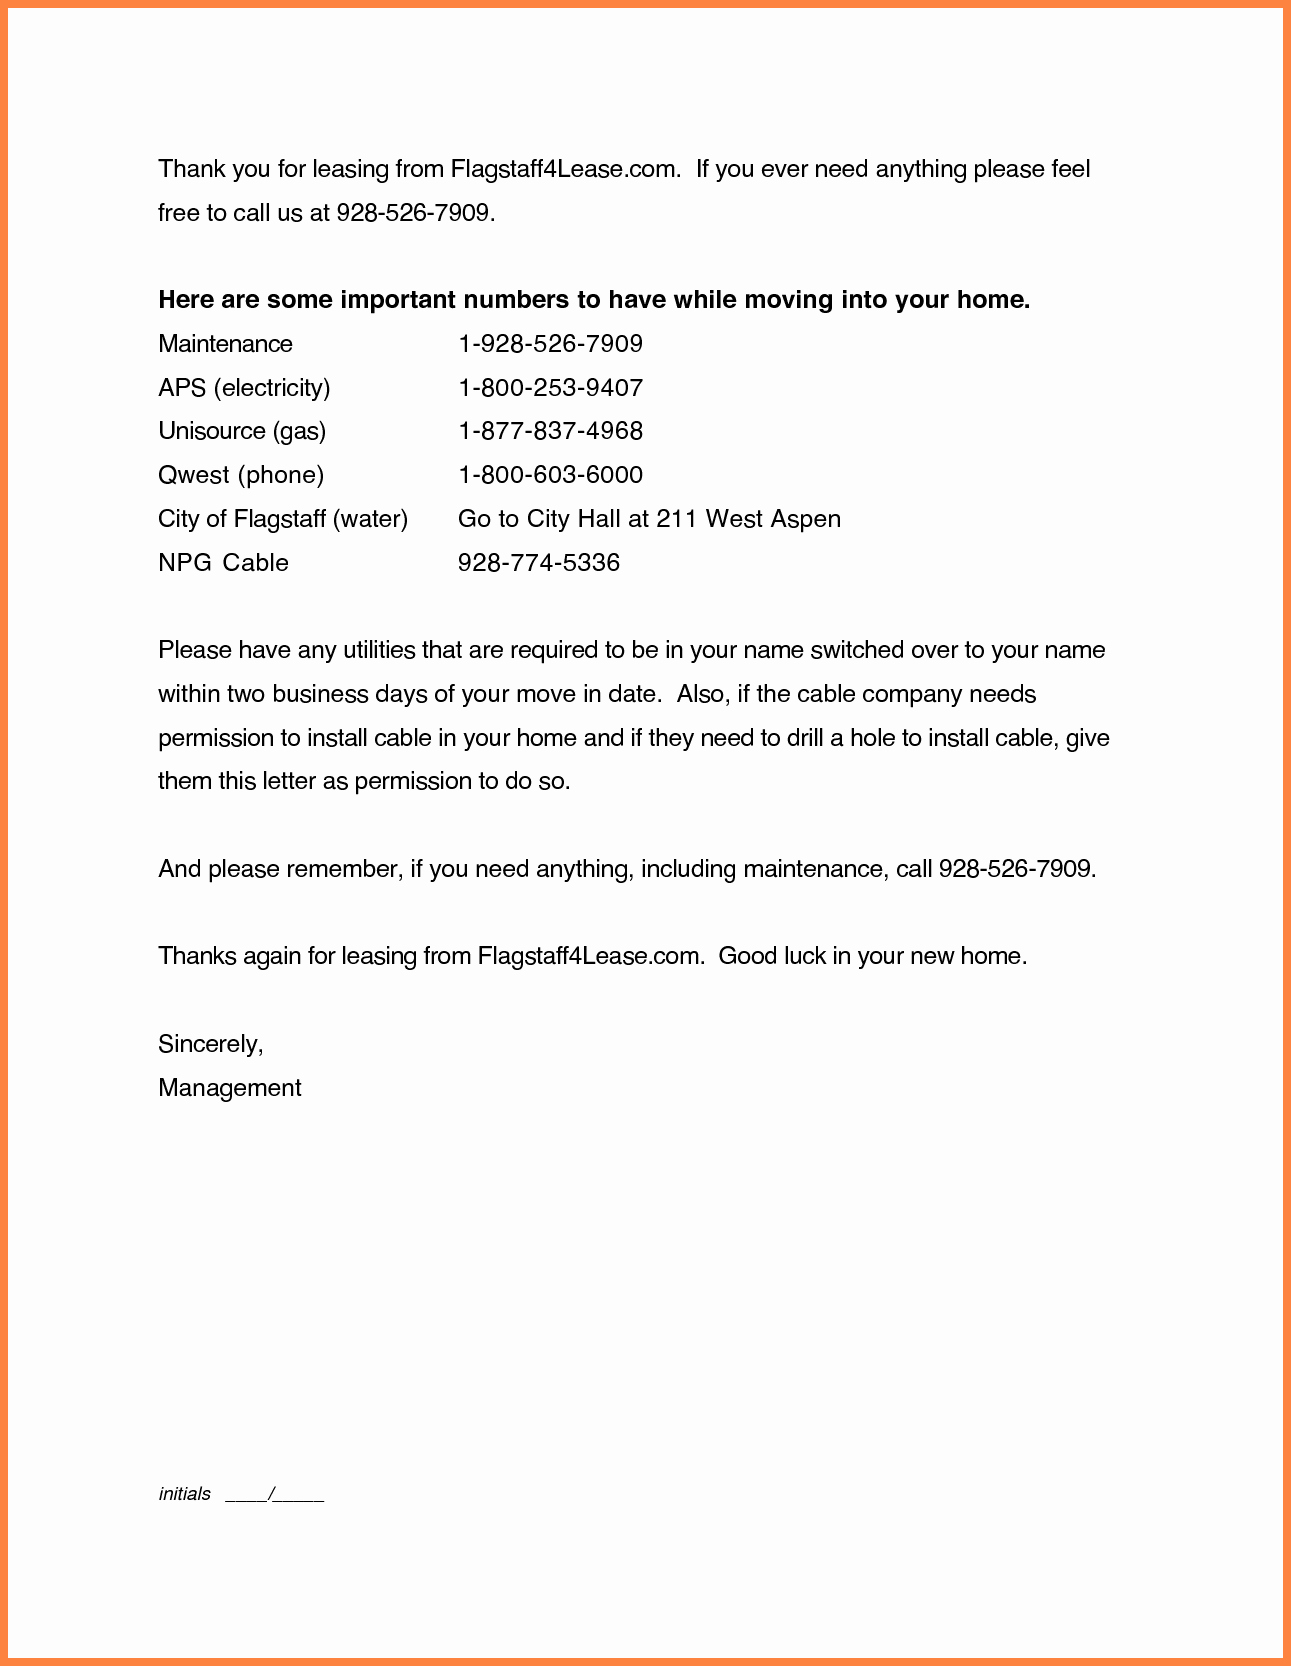 Lease Termination Letter to Tenant Best Of 8 Letter to Tenant to Terminate Lease Agreement